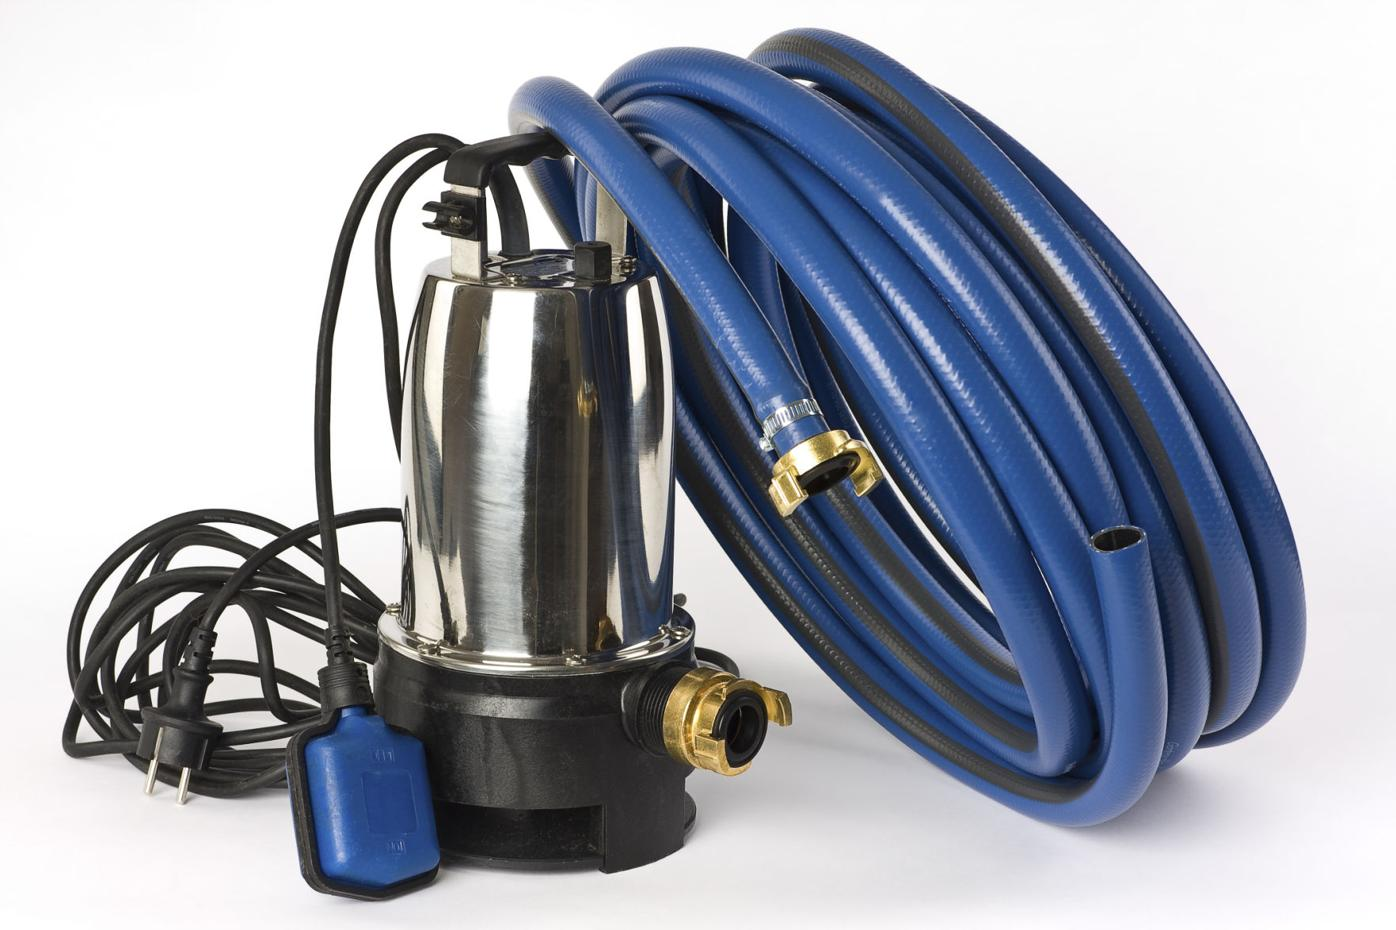 Around the house: Don't wait for rain to fall to test sump pump